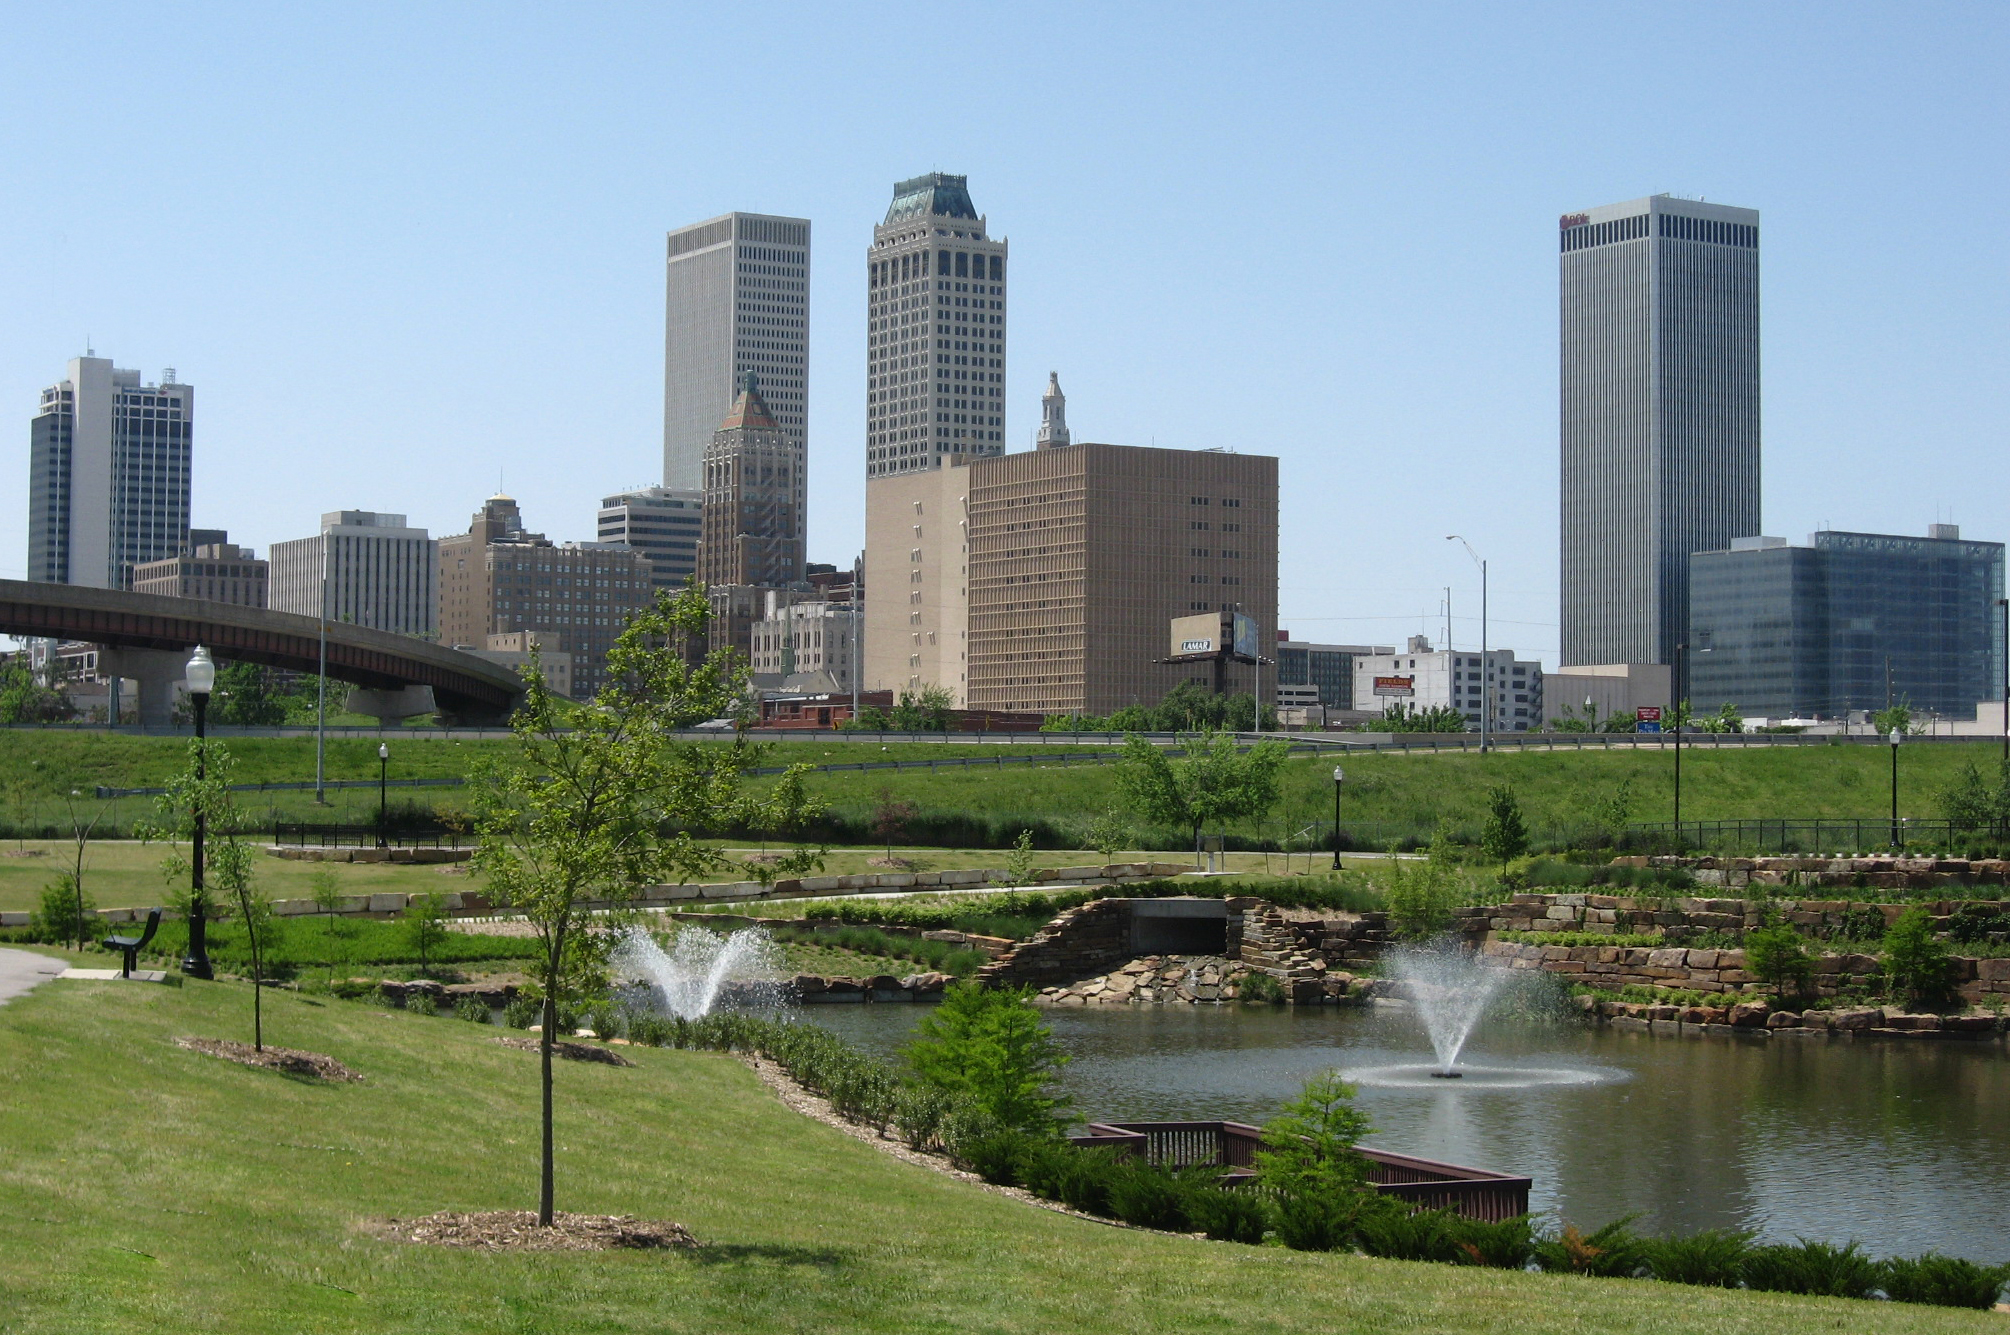 The Nonprofit Smart Growth Tulsa: An Update on Its Goals and Activities